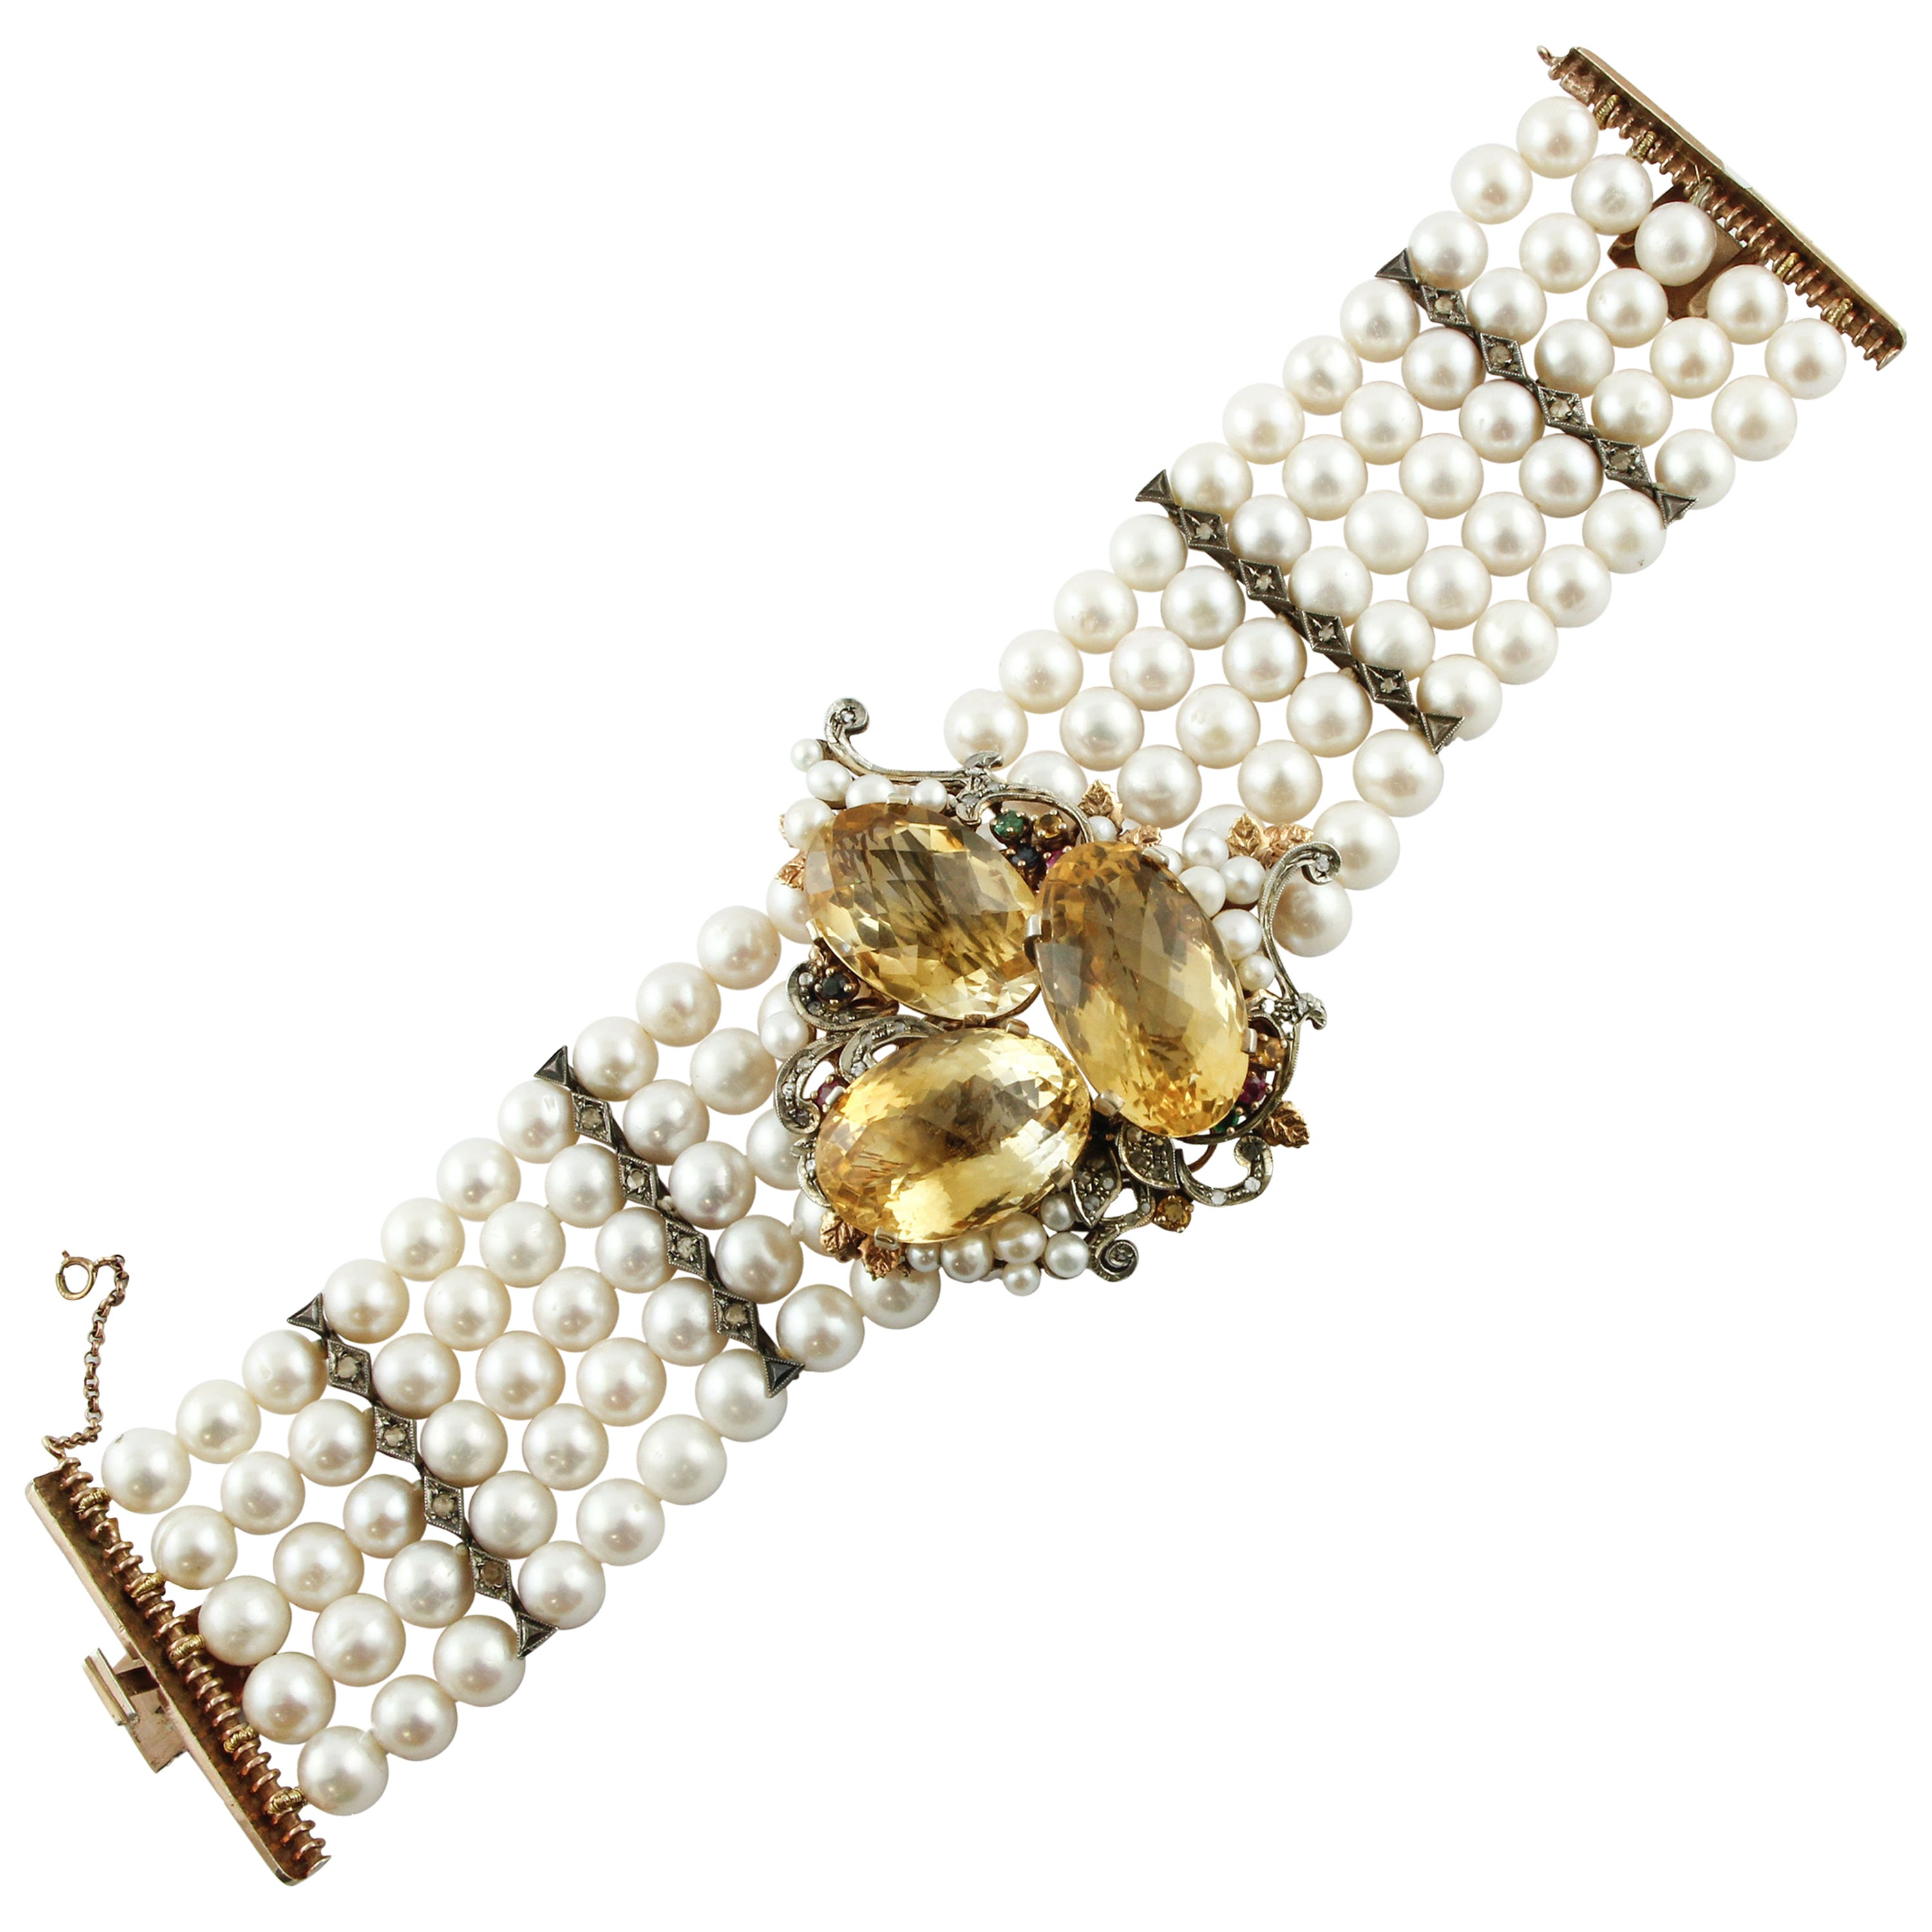 Diamond, Ruby, Emerald, Sapphires, Topaz, Pearl, Rose Gold and Silver Bracelet